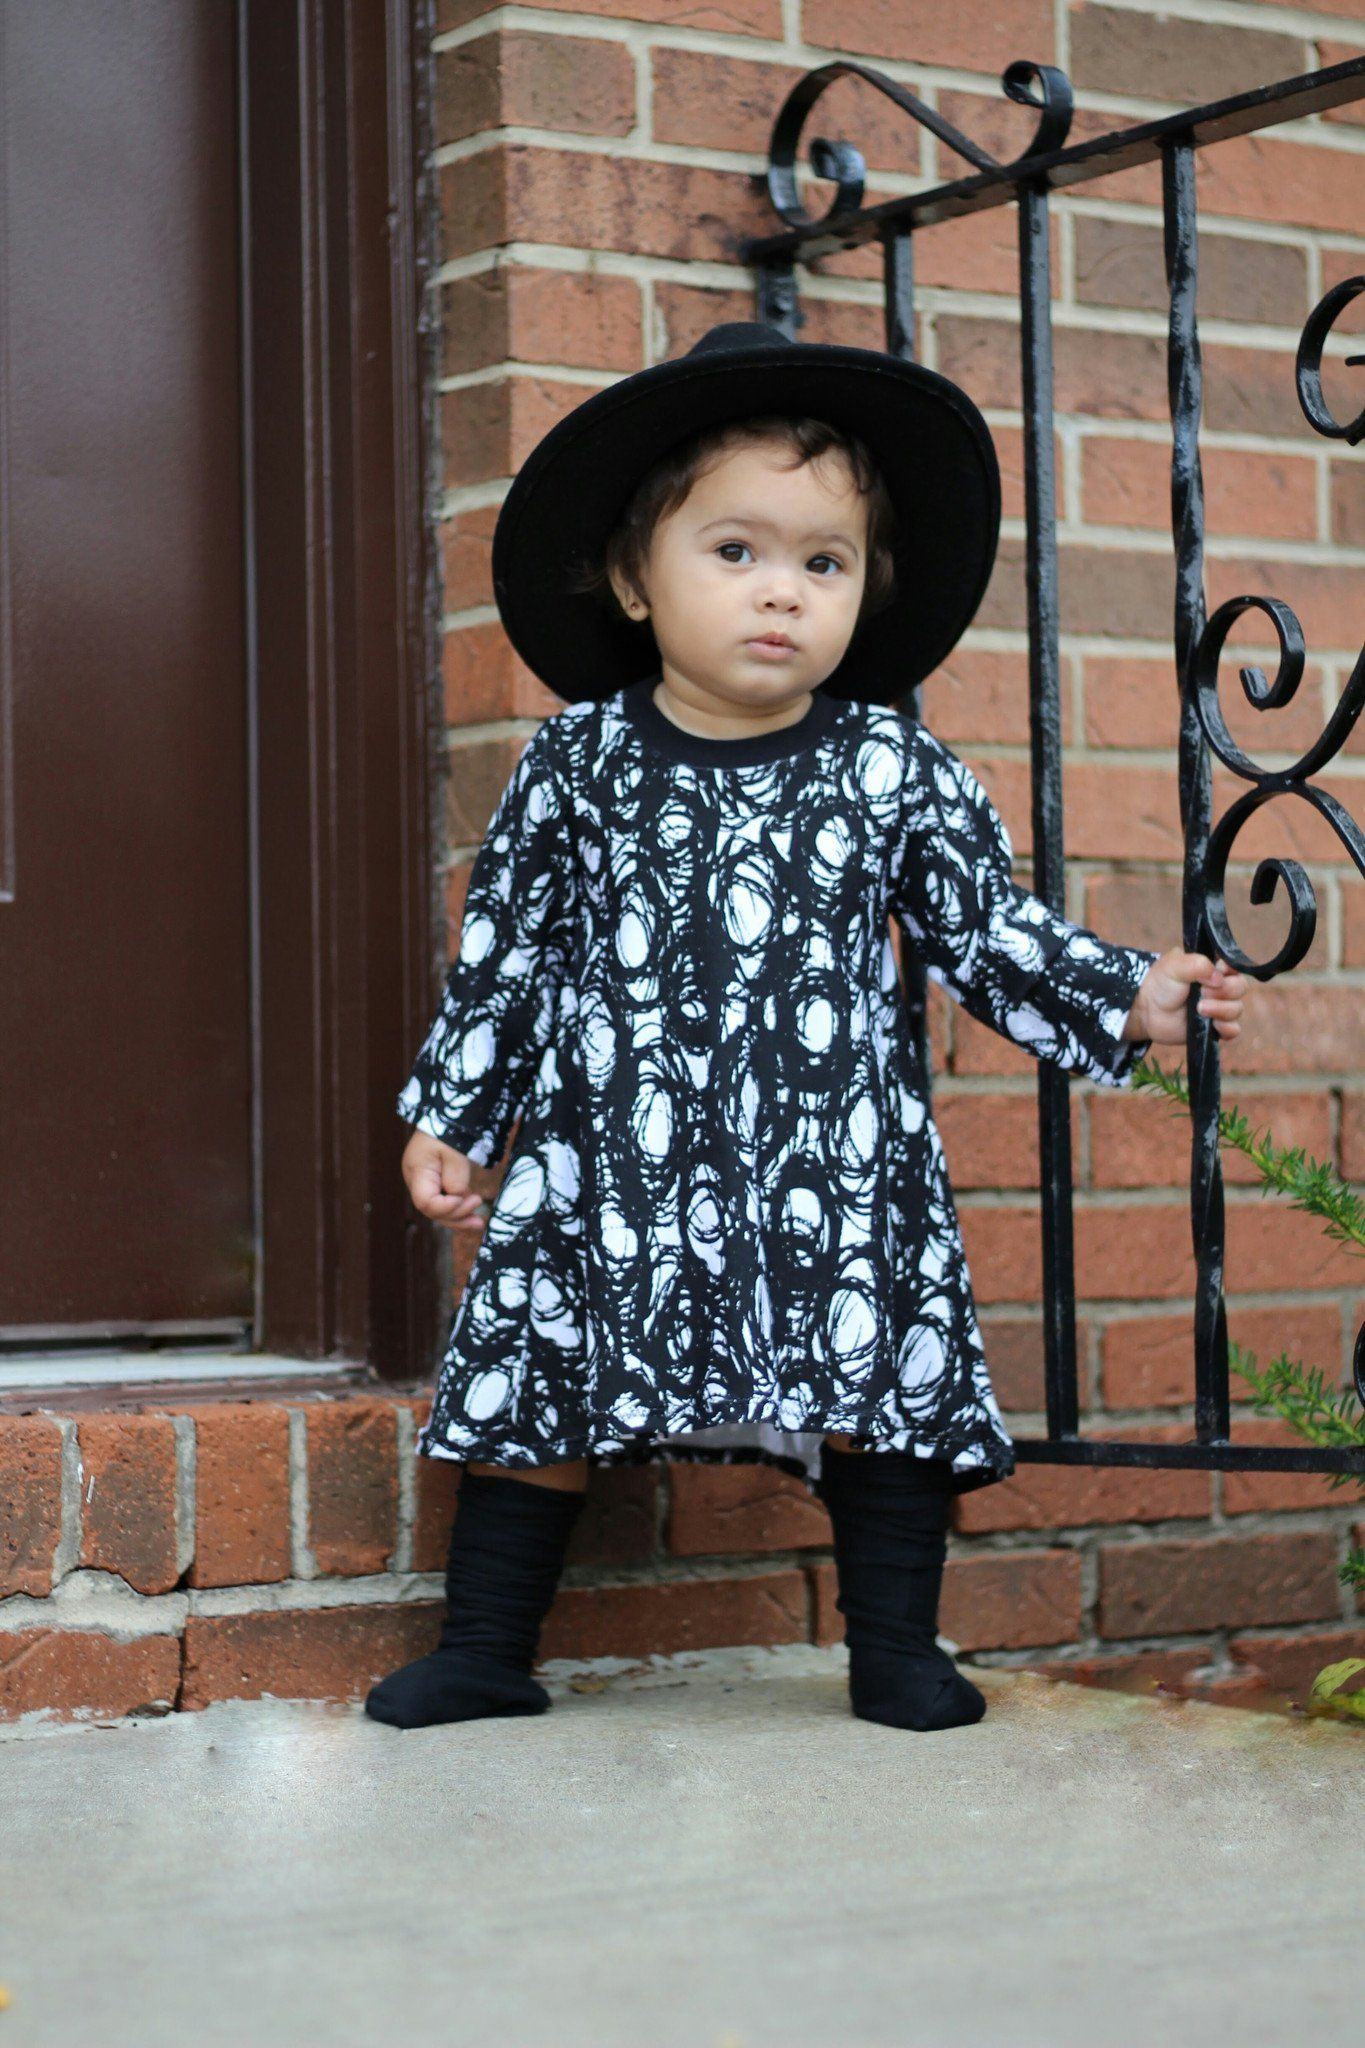 Dress - T-Shirt Dress For Toddler Girl's - Black & White